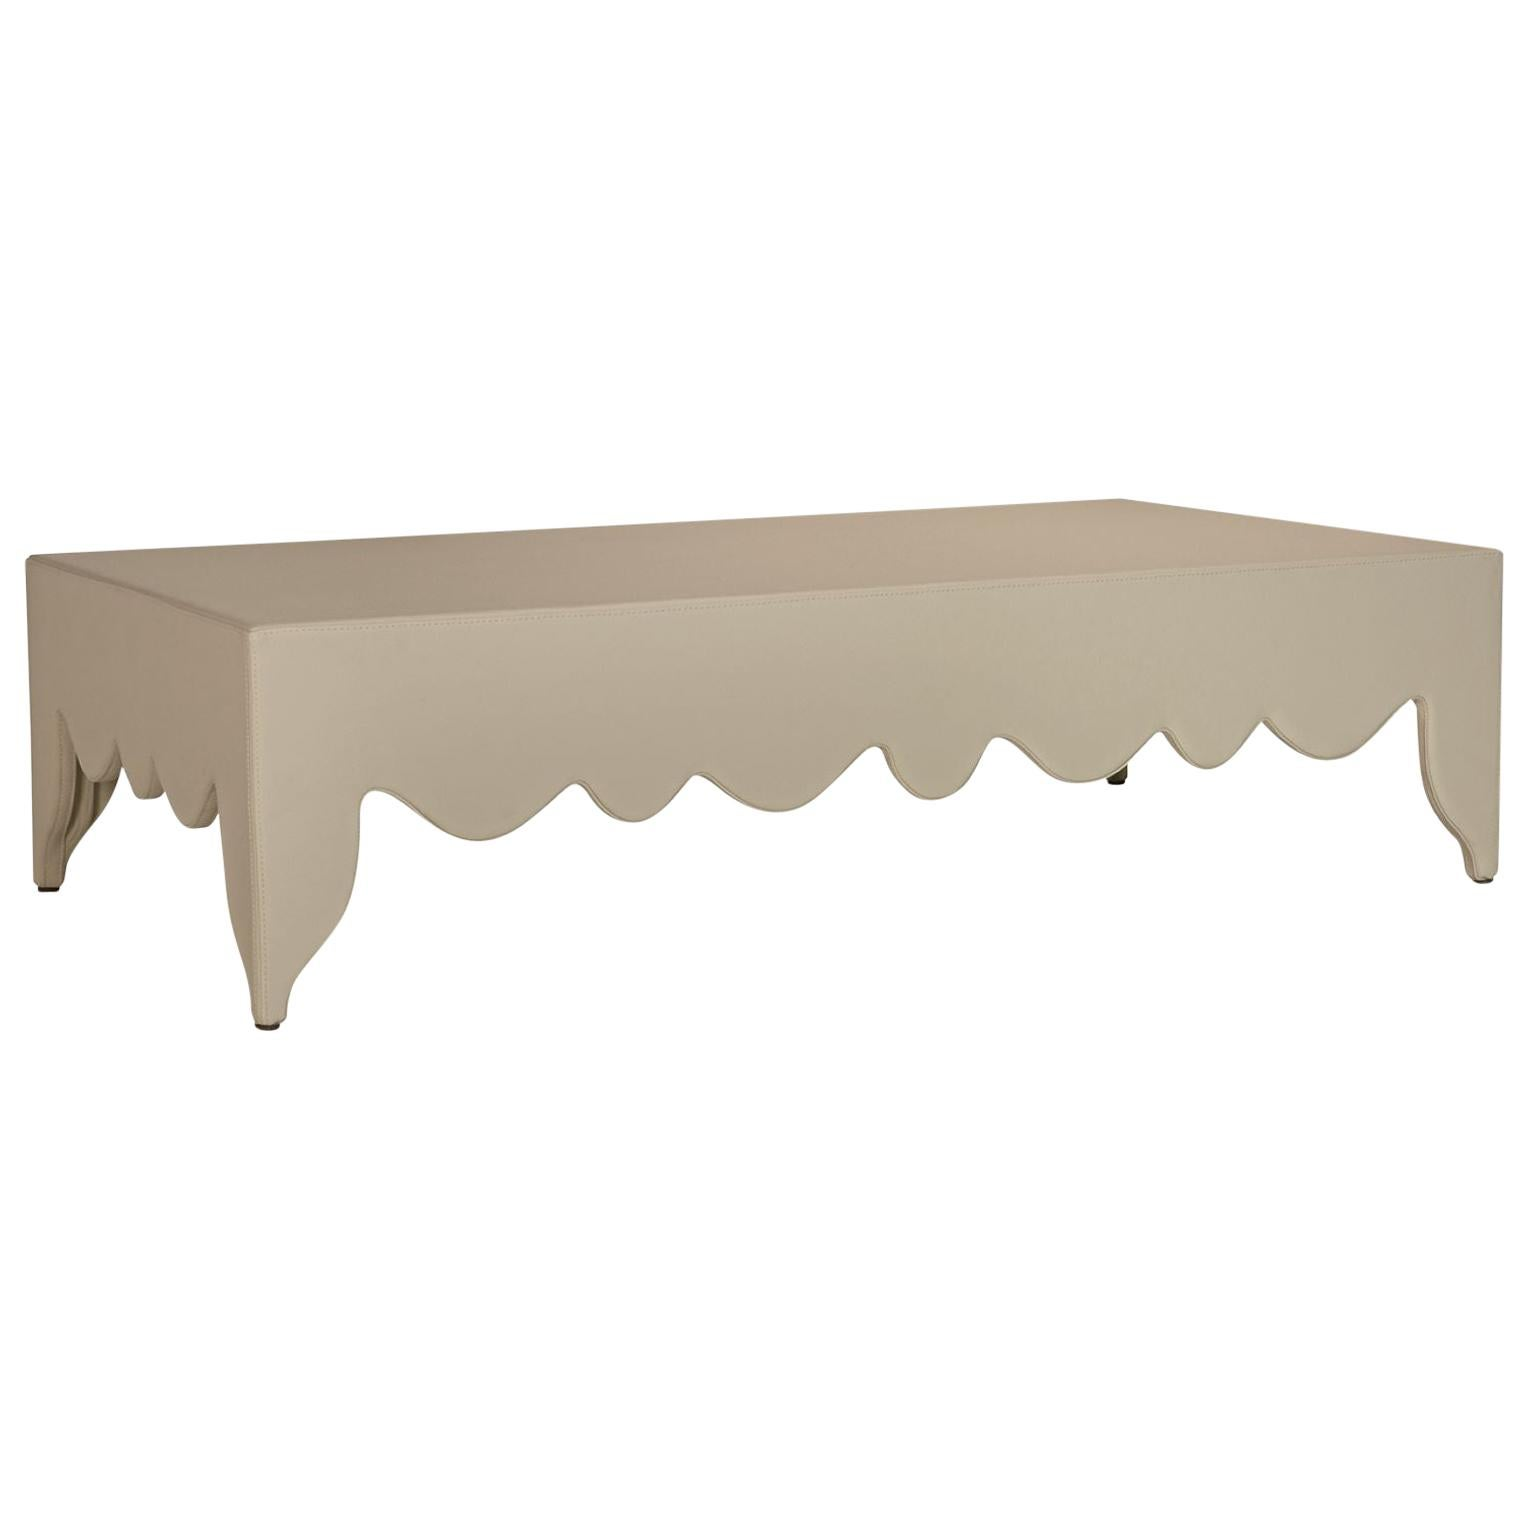 Stylish Low Square Coffee Table Leather Upholstered Customizable